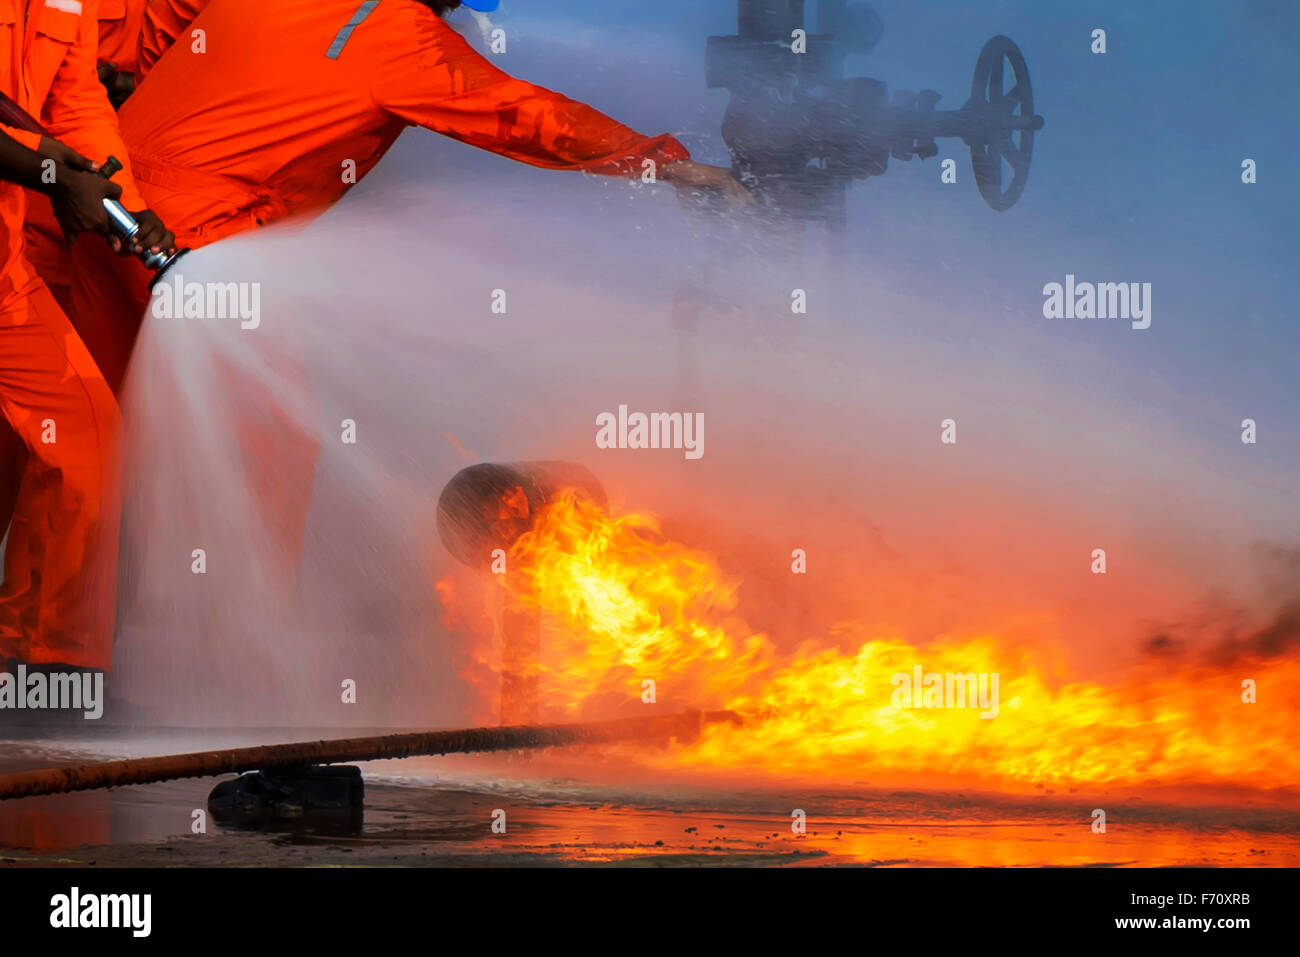 Fire fighters putting out fires, visakhapatnam, andhra pradesh, india, asia - Stock Image